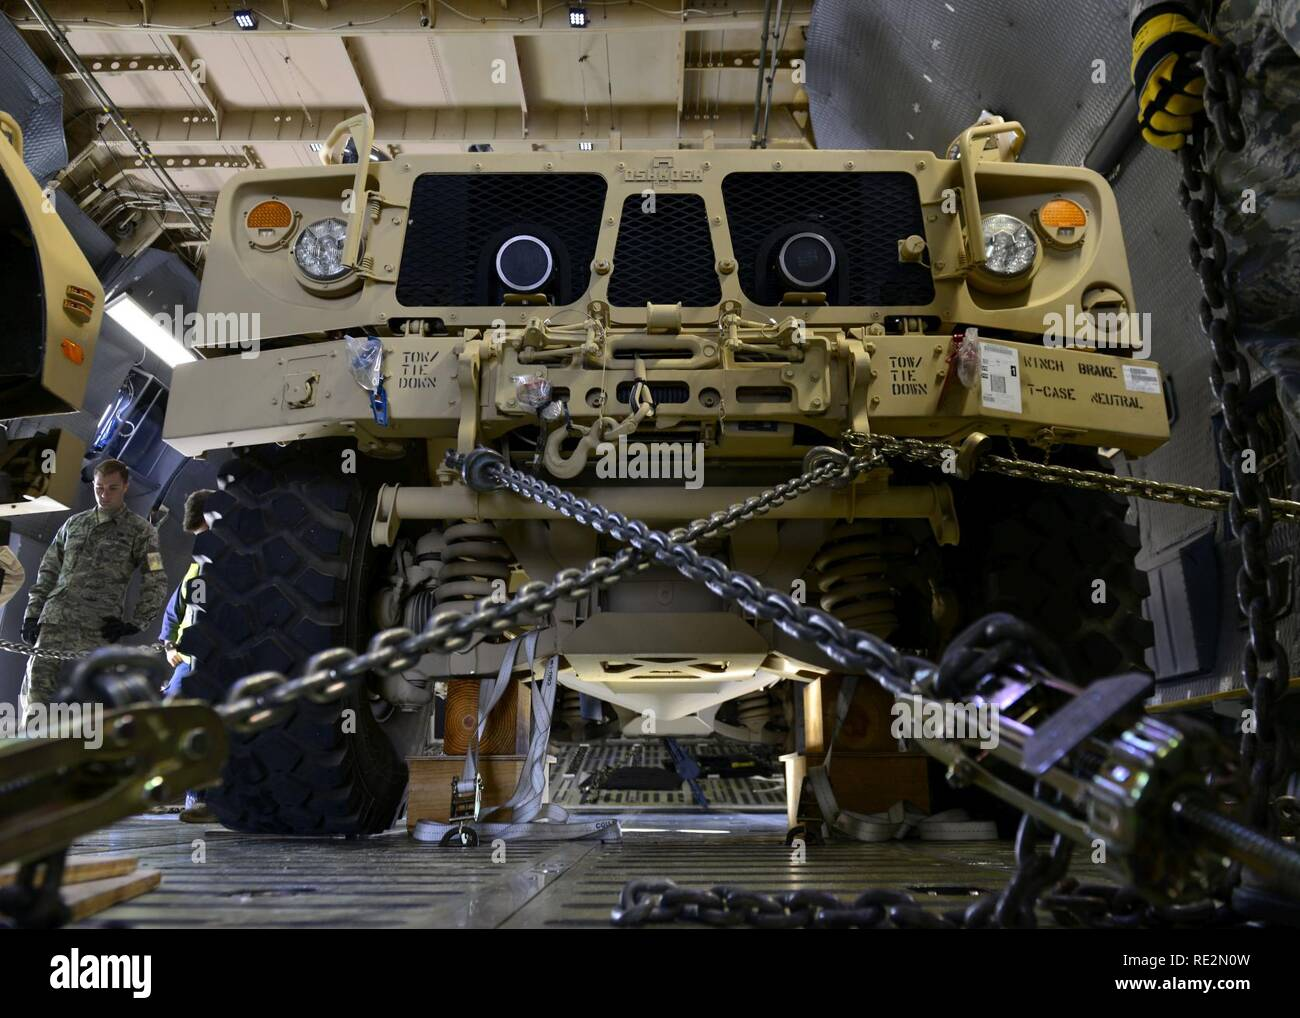 An all-terrain vehicle sits inside a C-5M Super Galaxy at Aviano Air Base, Italy on Nov. 8 2016. Several vehicles were secured with chains and supports to prevent movement during transport to Iraq. - Stock Image